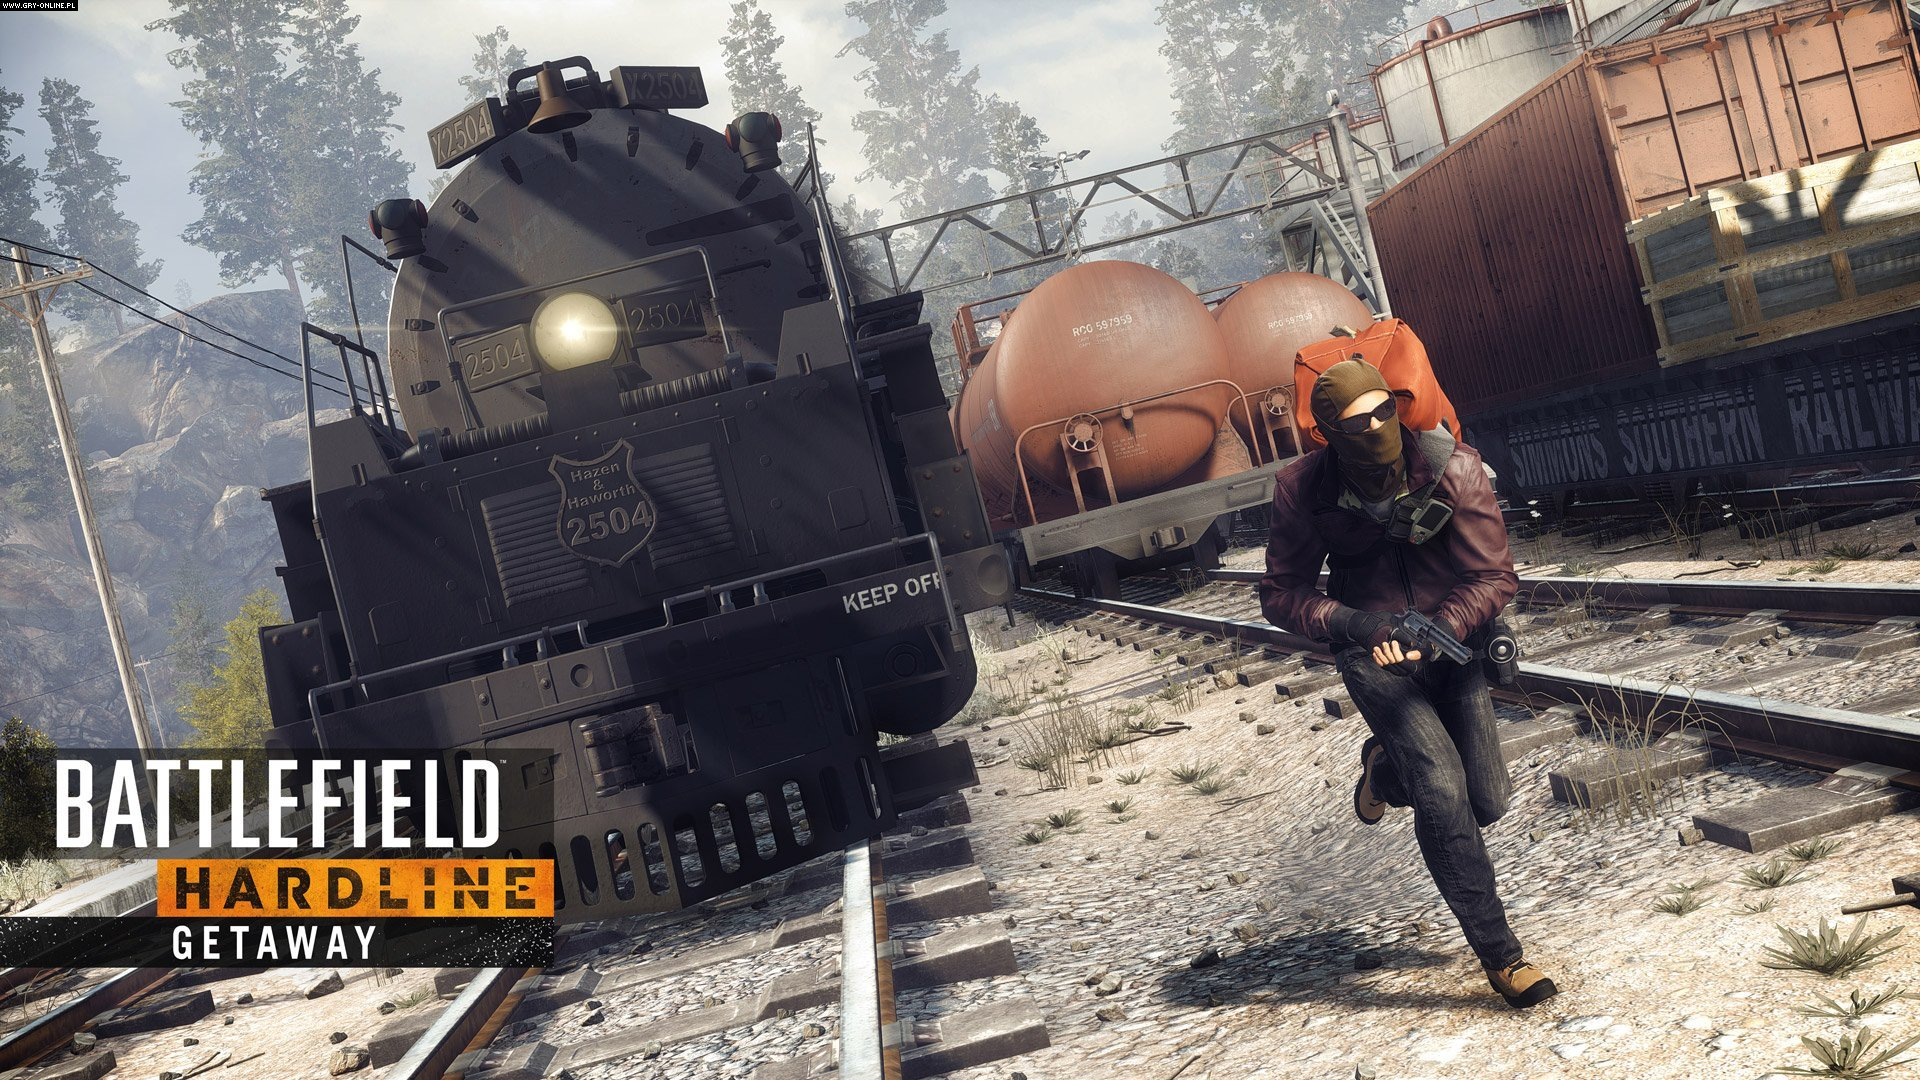 Battlefield Hardline: Getaway PC, X360, XONE, PS3, PS4 Games Image 2/3, Electronic Arts Inc.